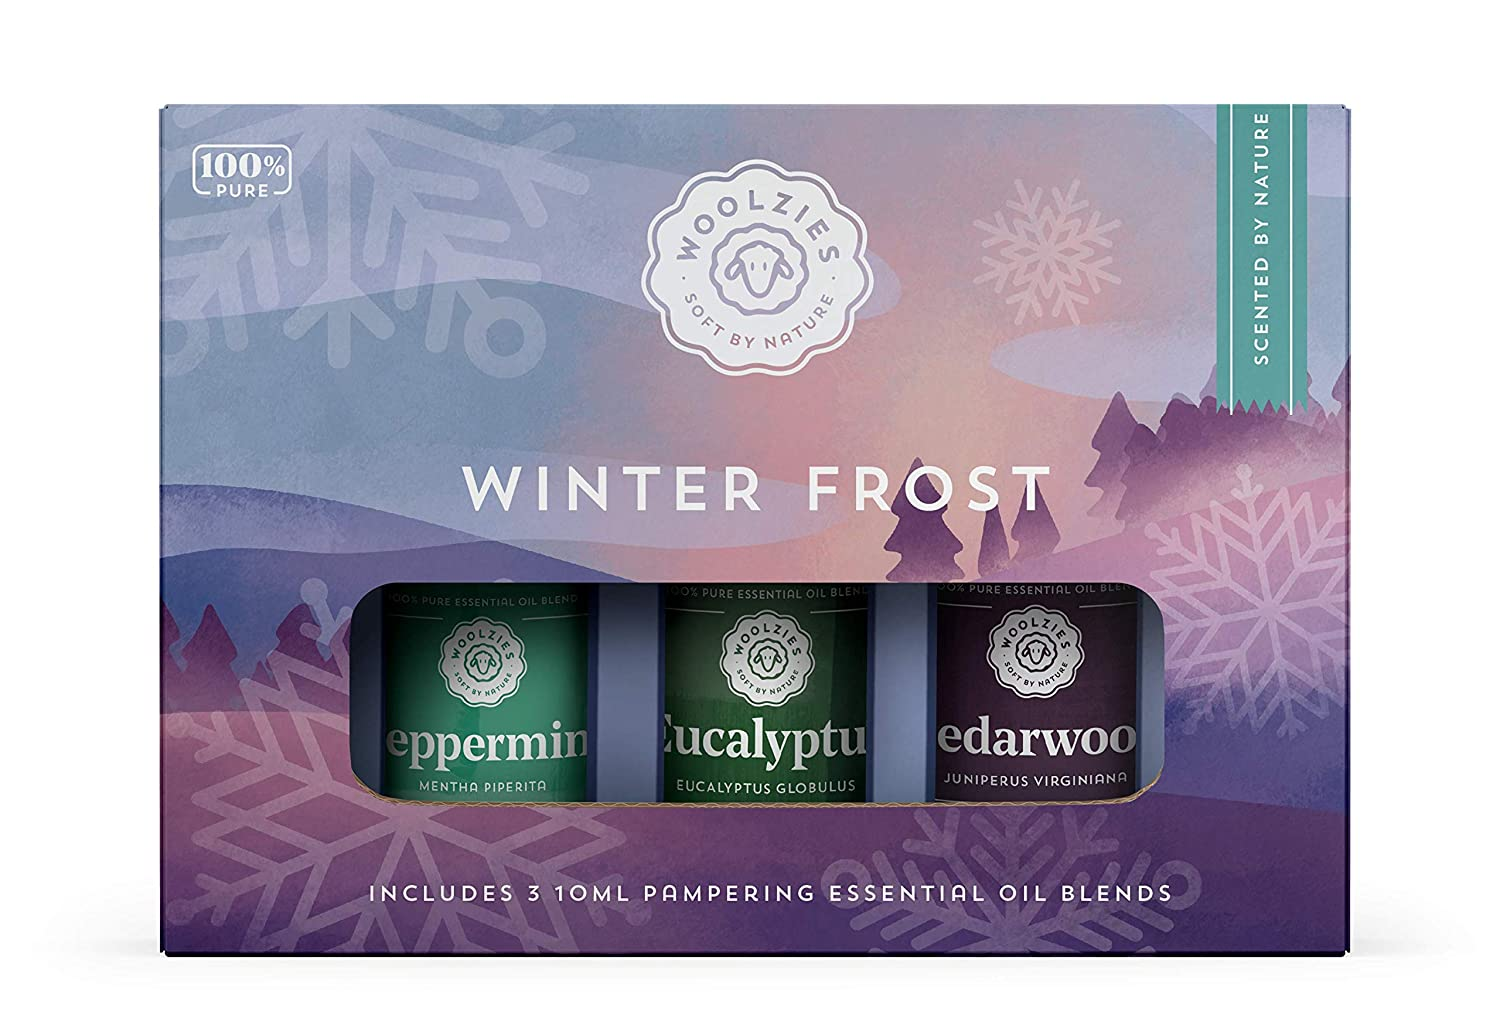 Woolzies 100% Pure Winter Frost Essential Oil Set of 3   Incl. Peppermint, Eucalyptus & Cedarwood Oils   Highest Quality Aromatherapy Therapeutic Grade   For Diffusion Internal & Topical Use